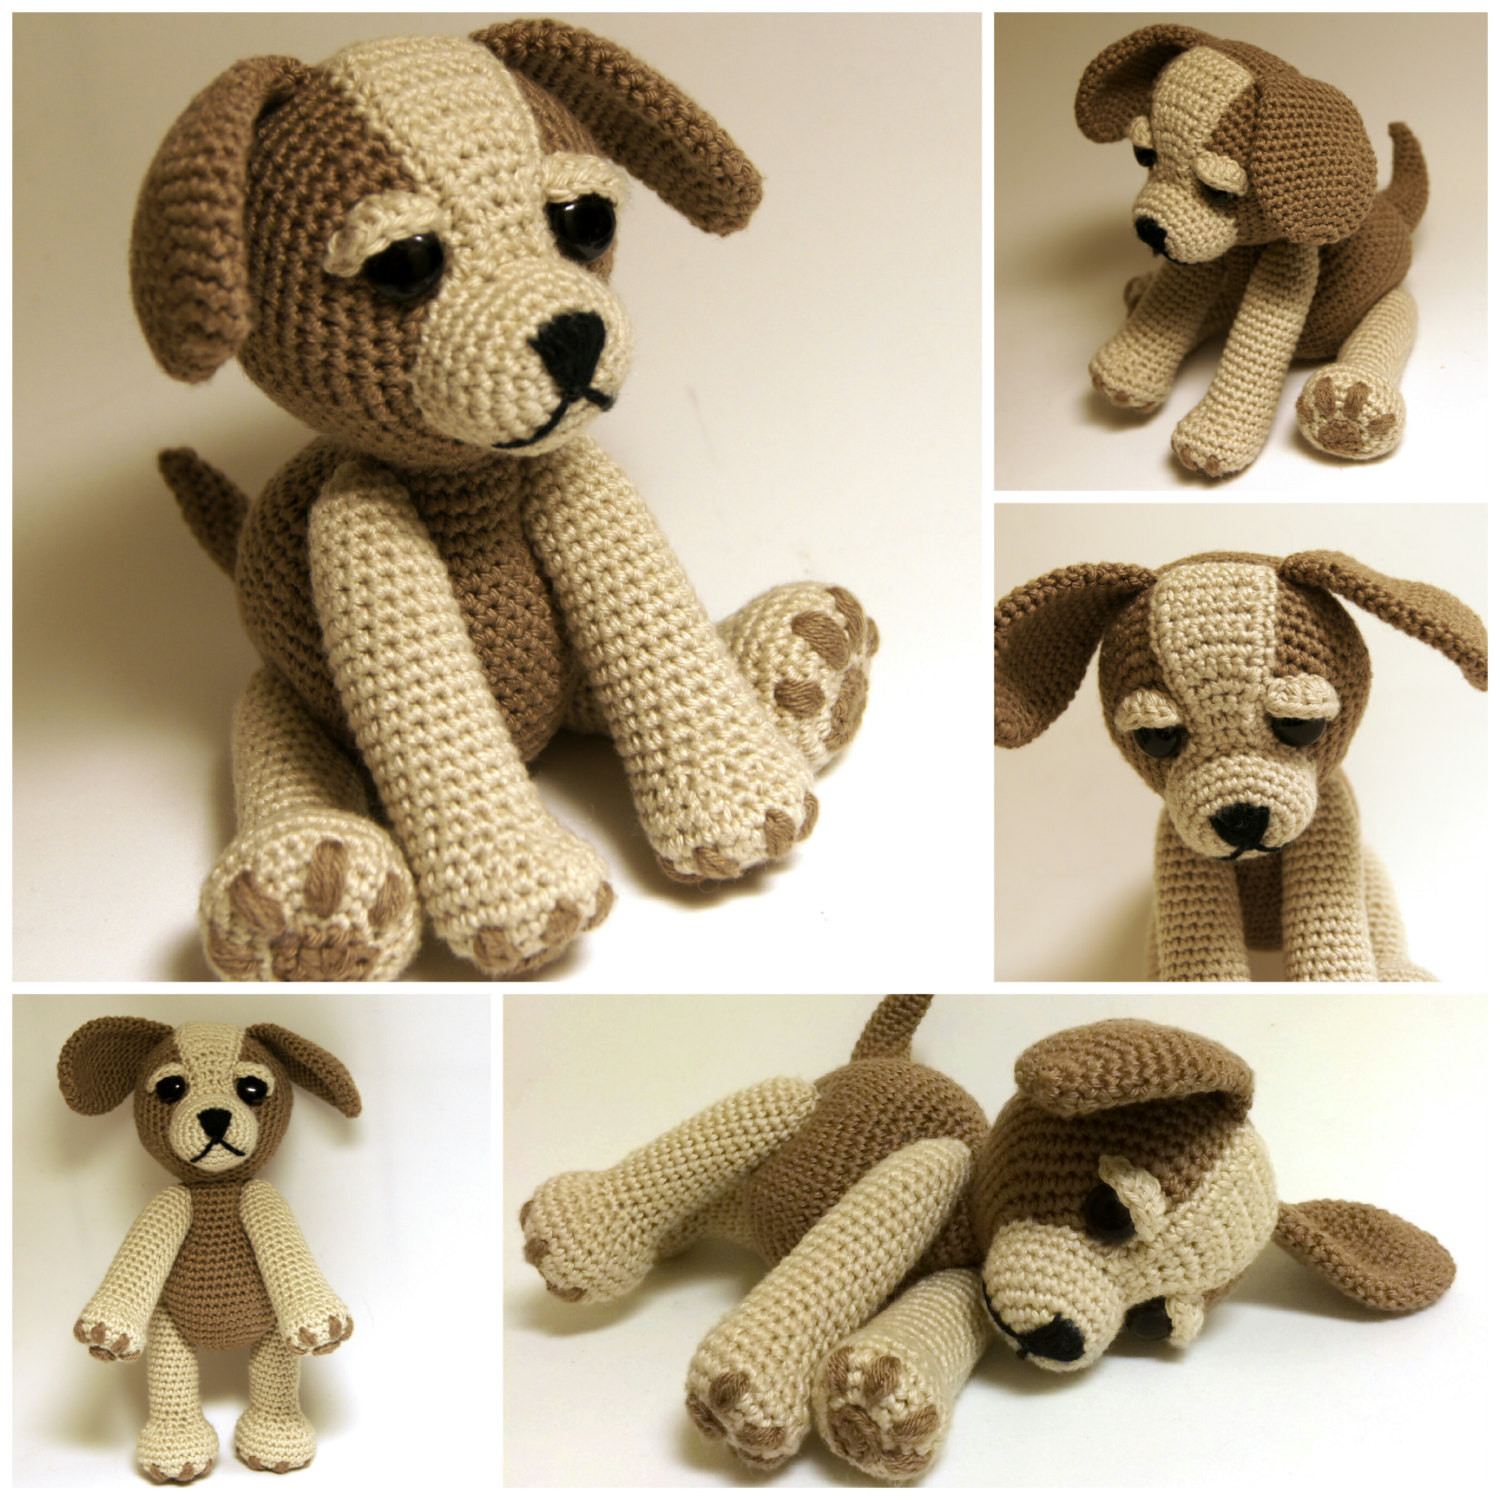 Free Crochet Dog Patterns New Crochet Pattern Sammy the Puppy Dog Crochet Dog Of Superb 45 Pictures Free Crochet Dog Patterns